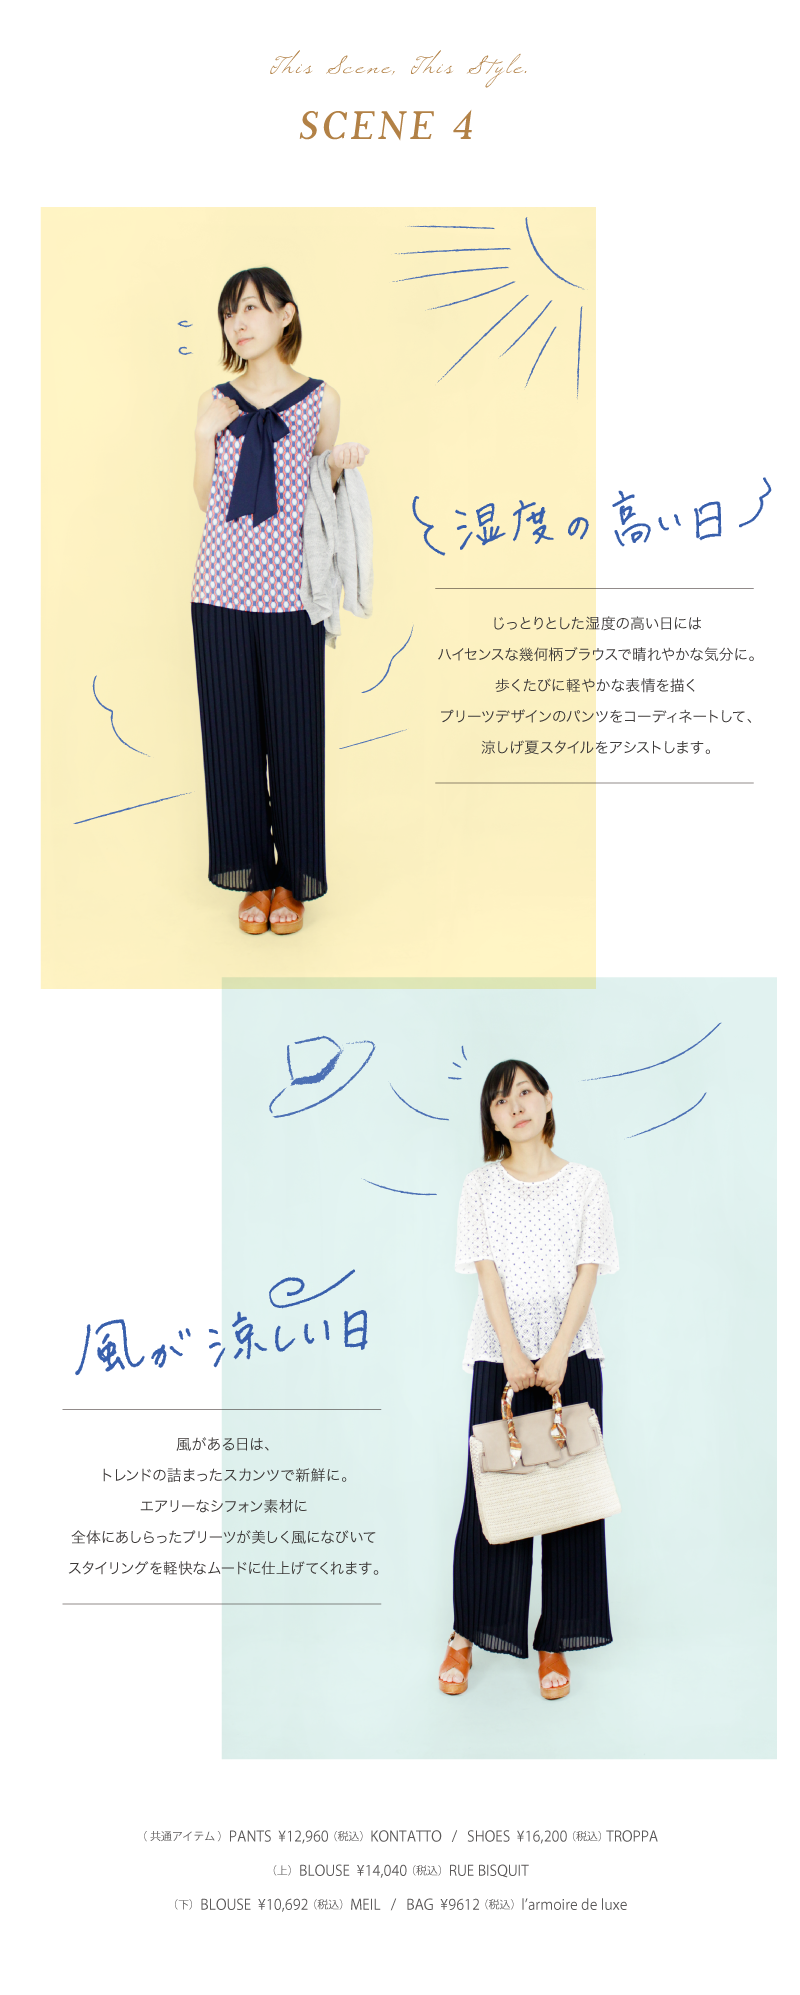 ac-RC_160602_all-weather-styles_vol2_s04.png